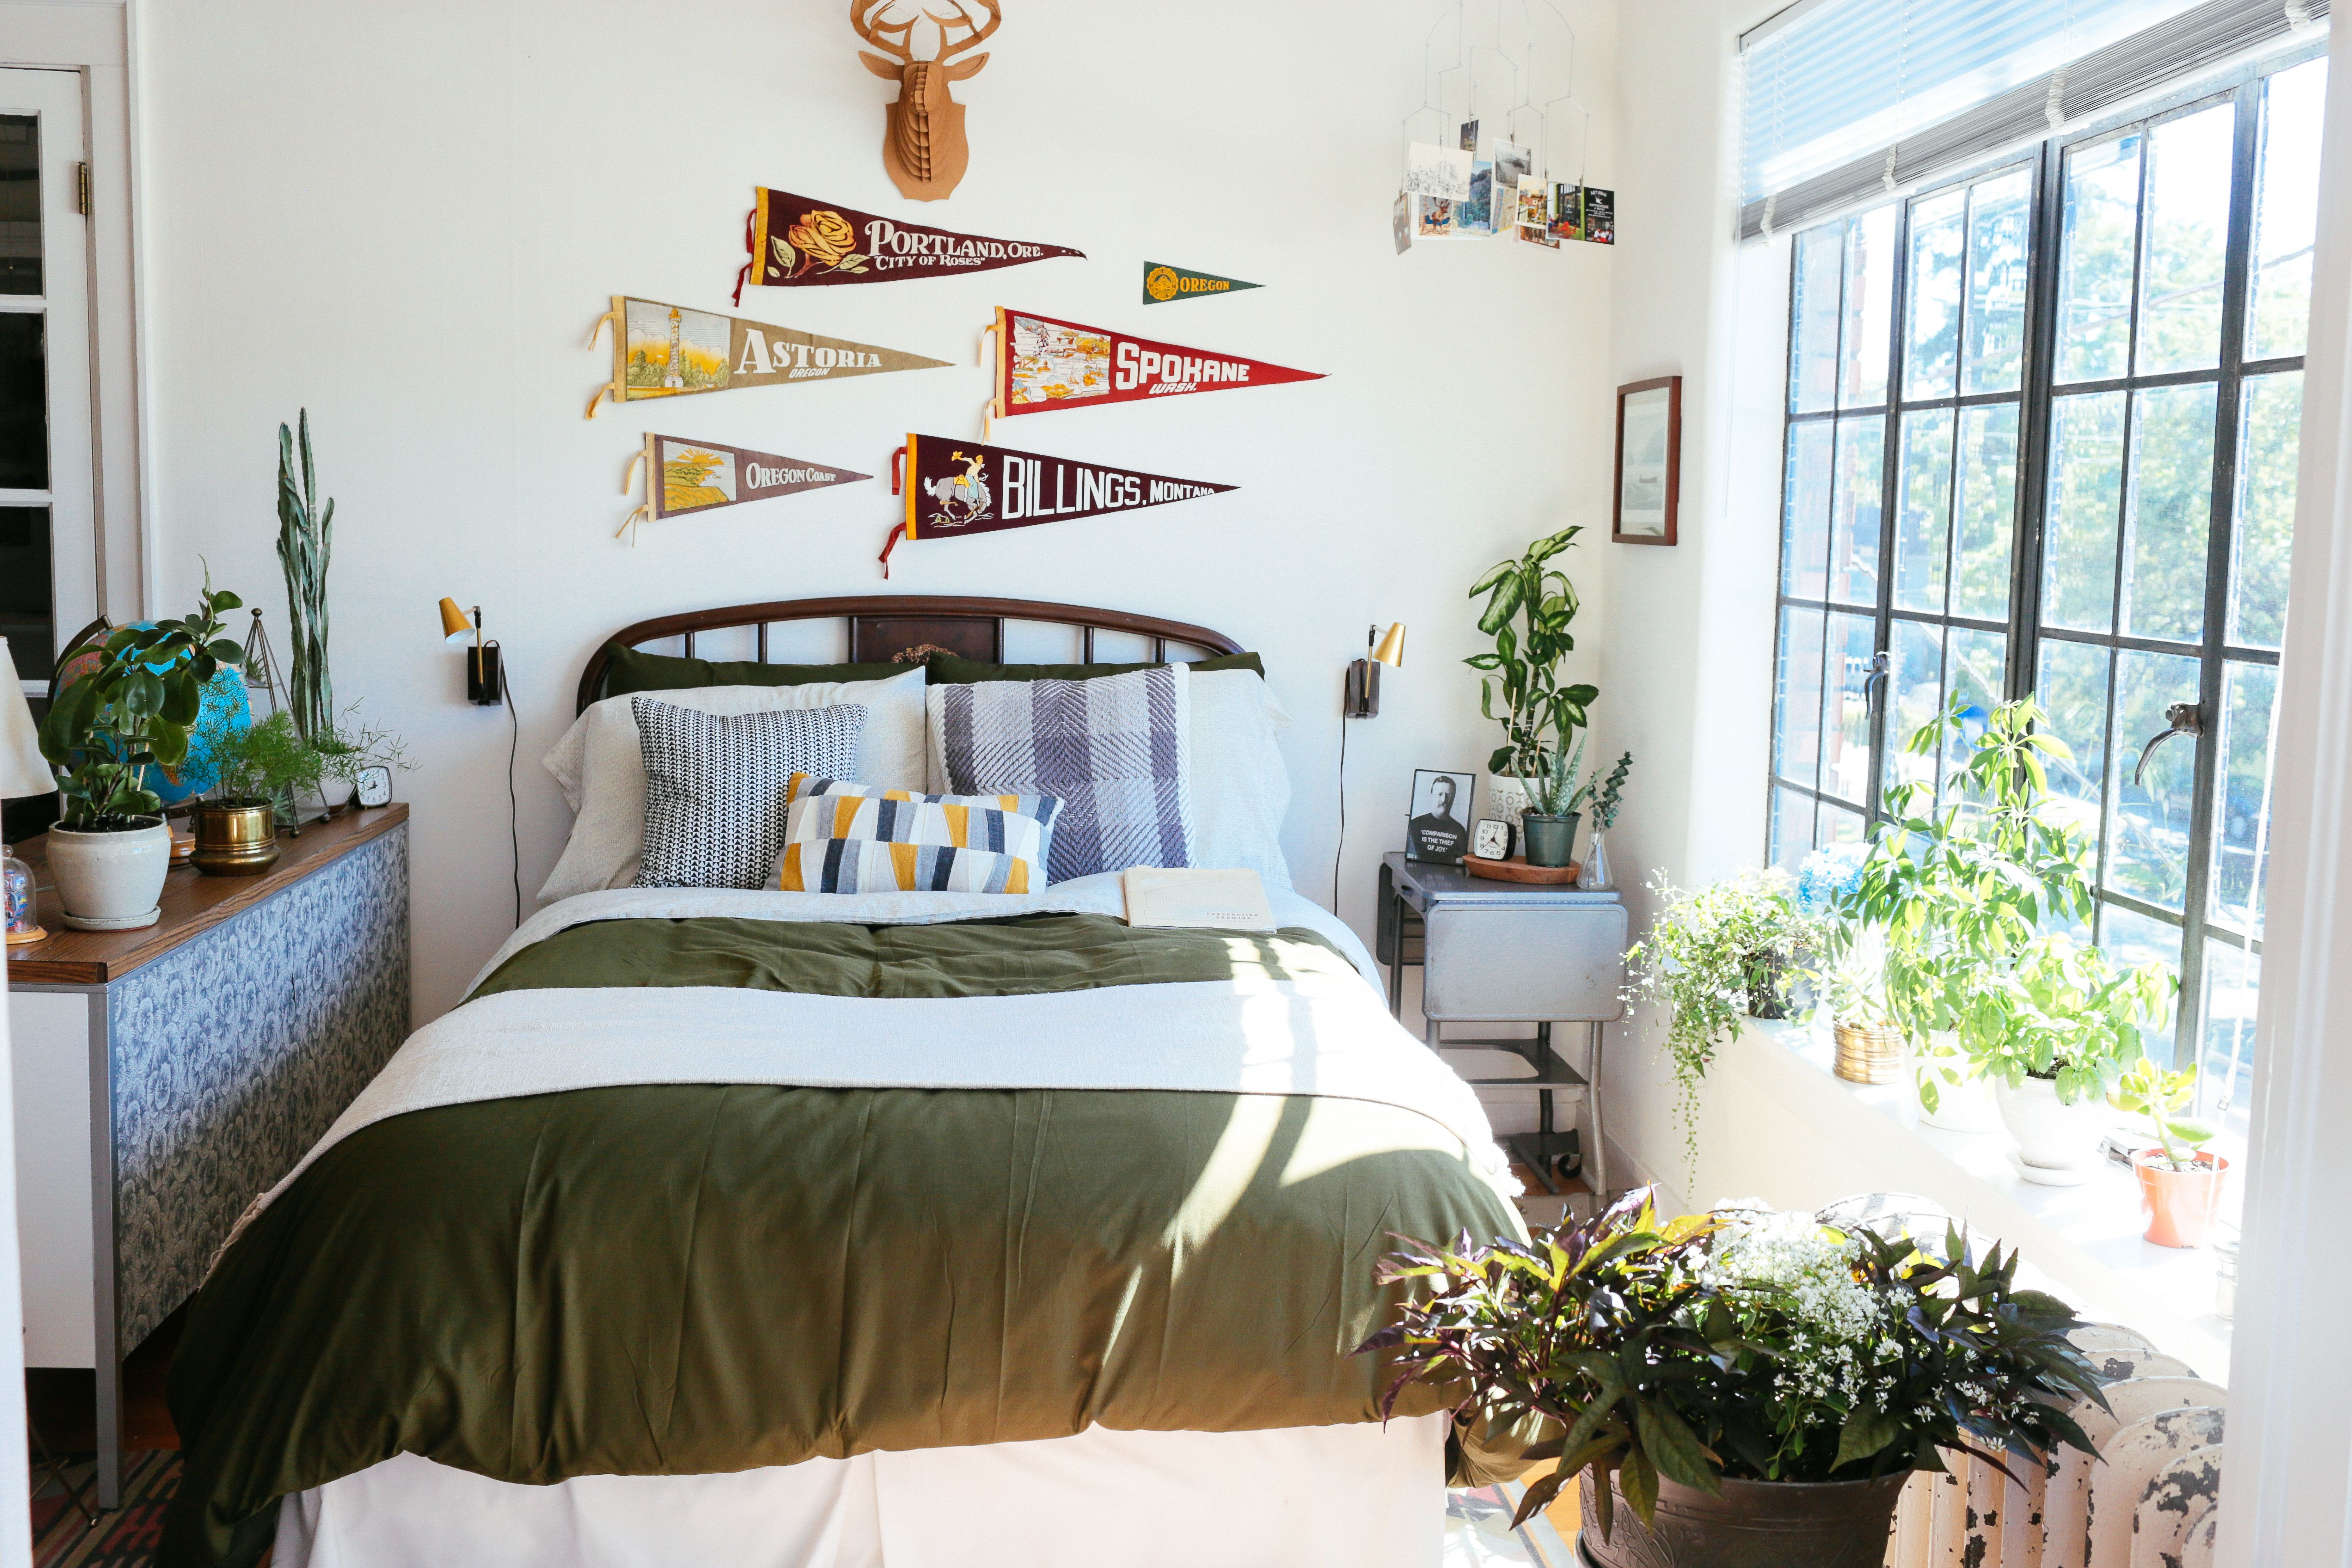 Home Decor Inspiration We Love Using Plants To Brighten Up Any Room Modern Bedroom Modern Design Home Decor Inspiration